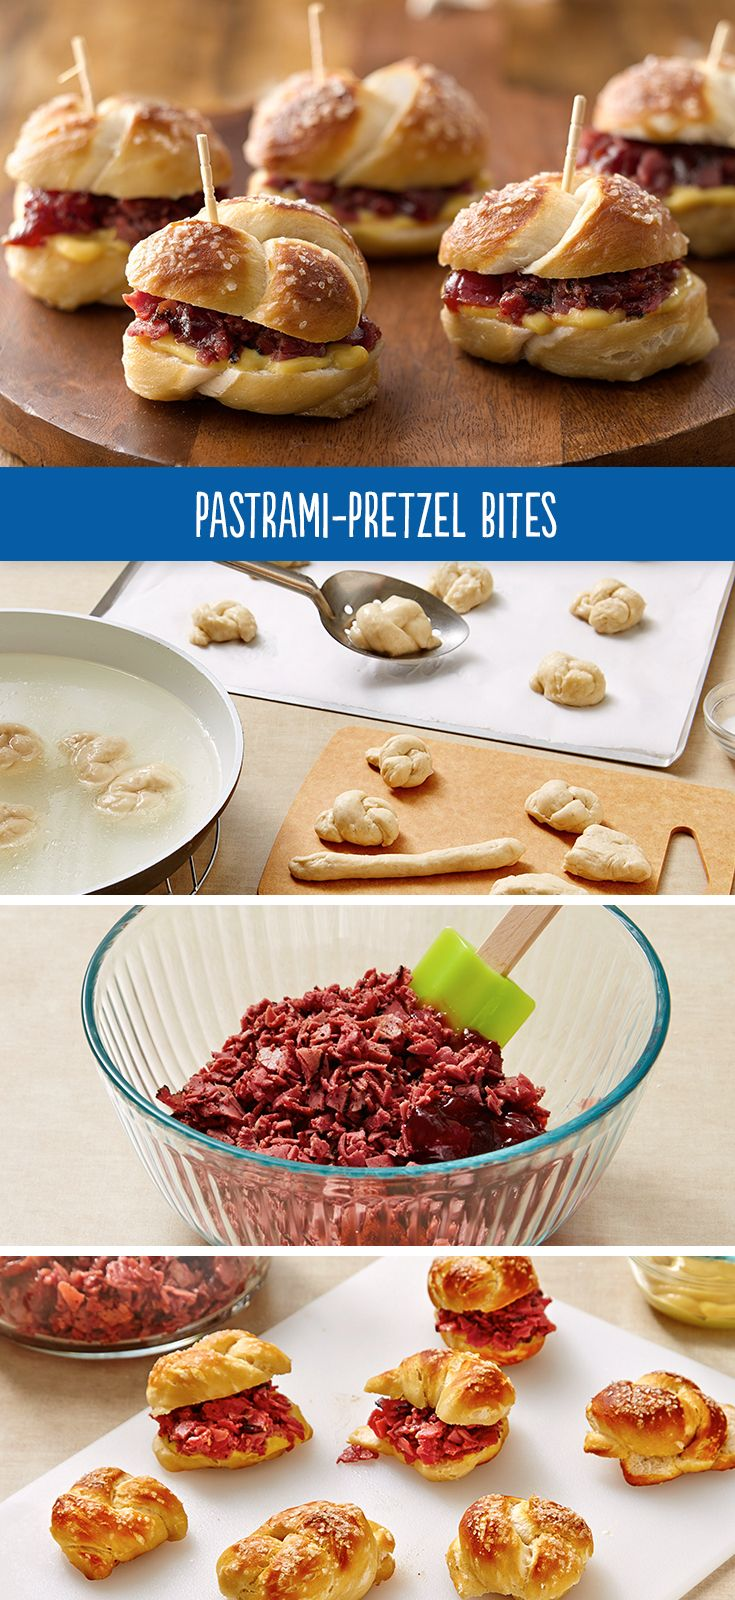 Yummy combination of sweet, heat and meat! Create Pastrami-Pretzel Bites with biscuits to tie the knot and have a savory-sweet filling.